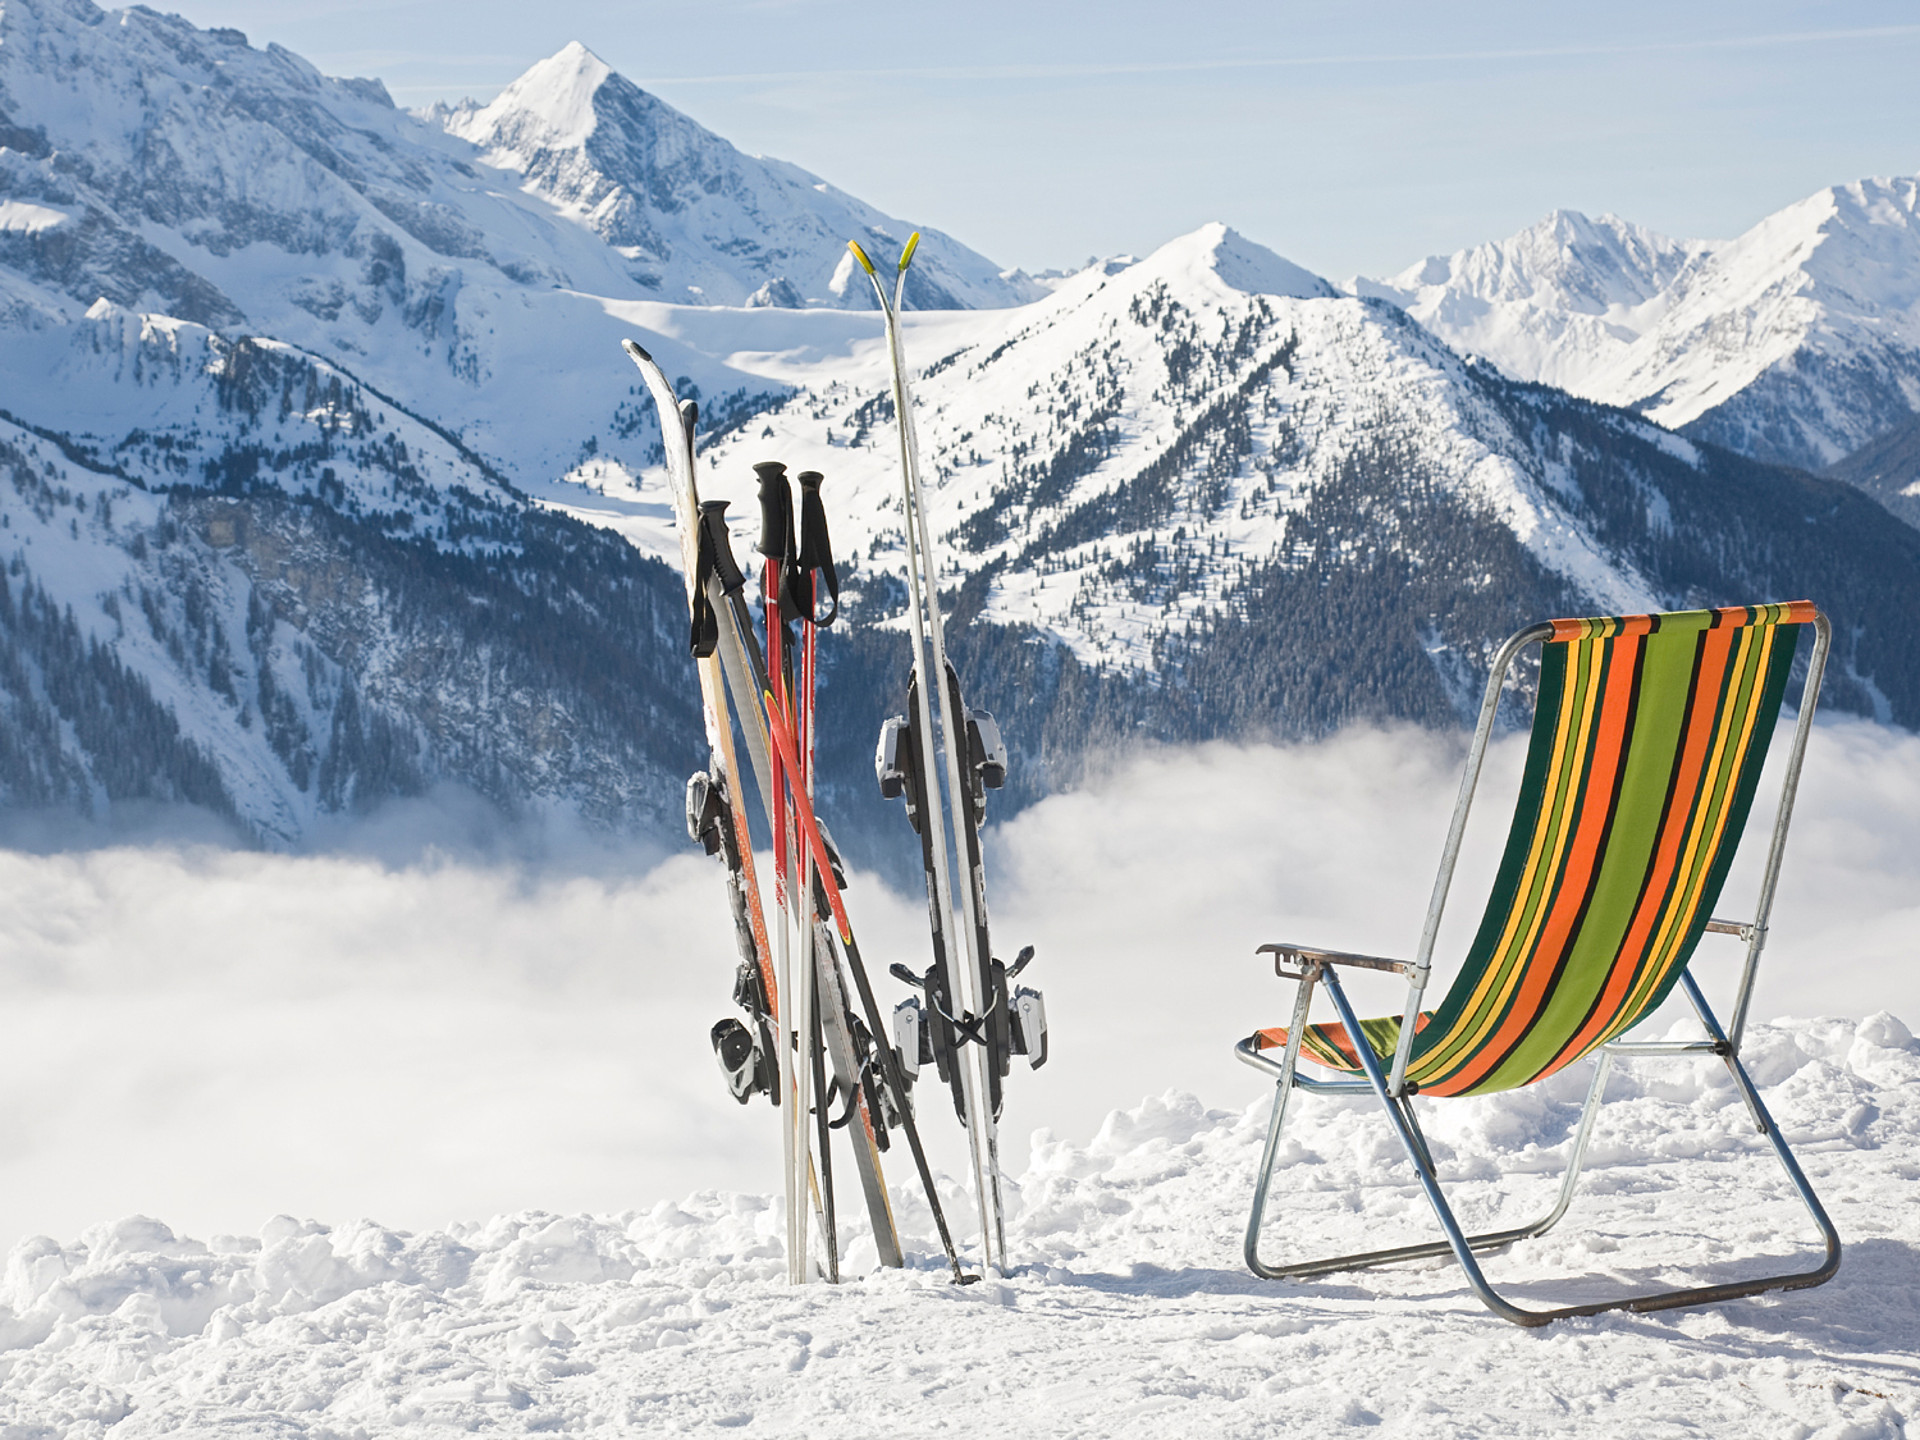 winterurlaub in s dtirol bis zu 40 rabatt im skiparadies s dtirol. Black Bedroom Furniture Sets. Home Design Ideas